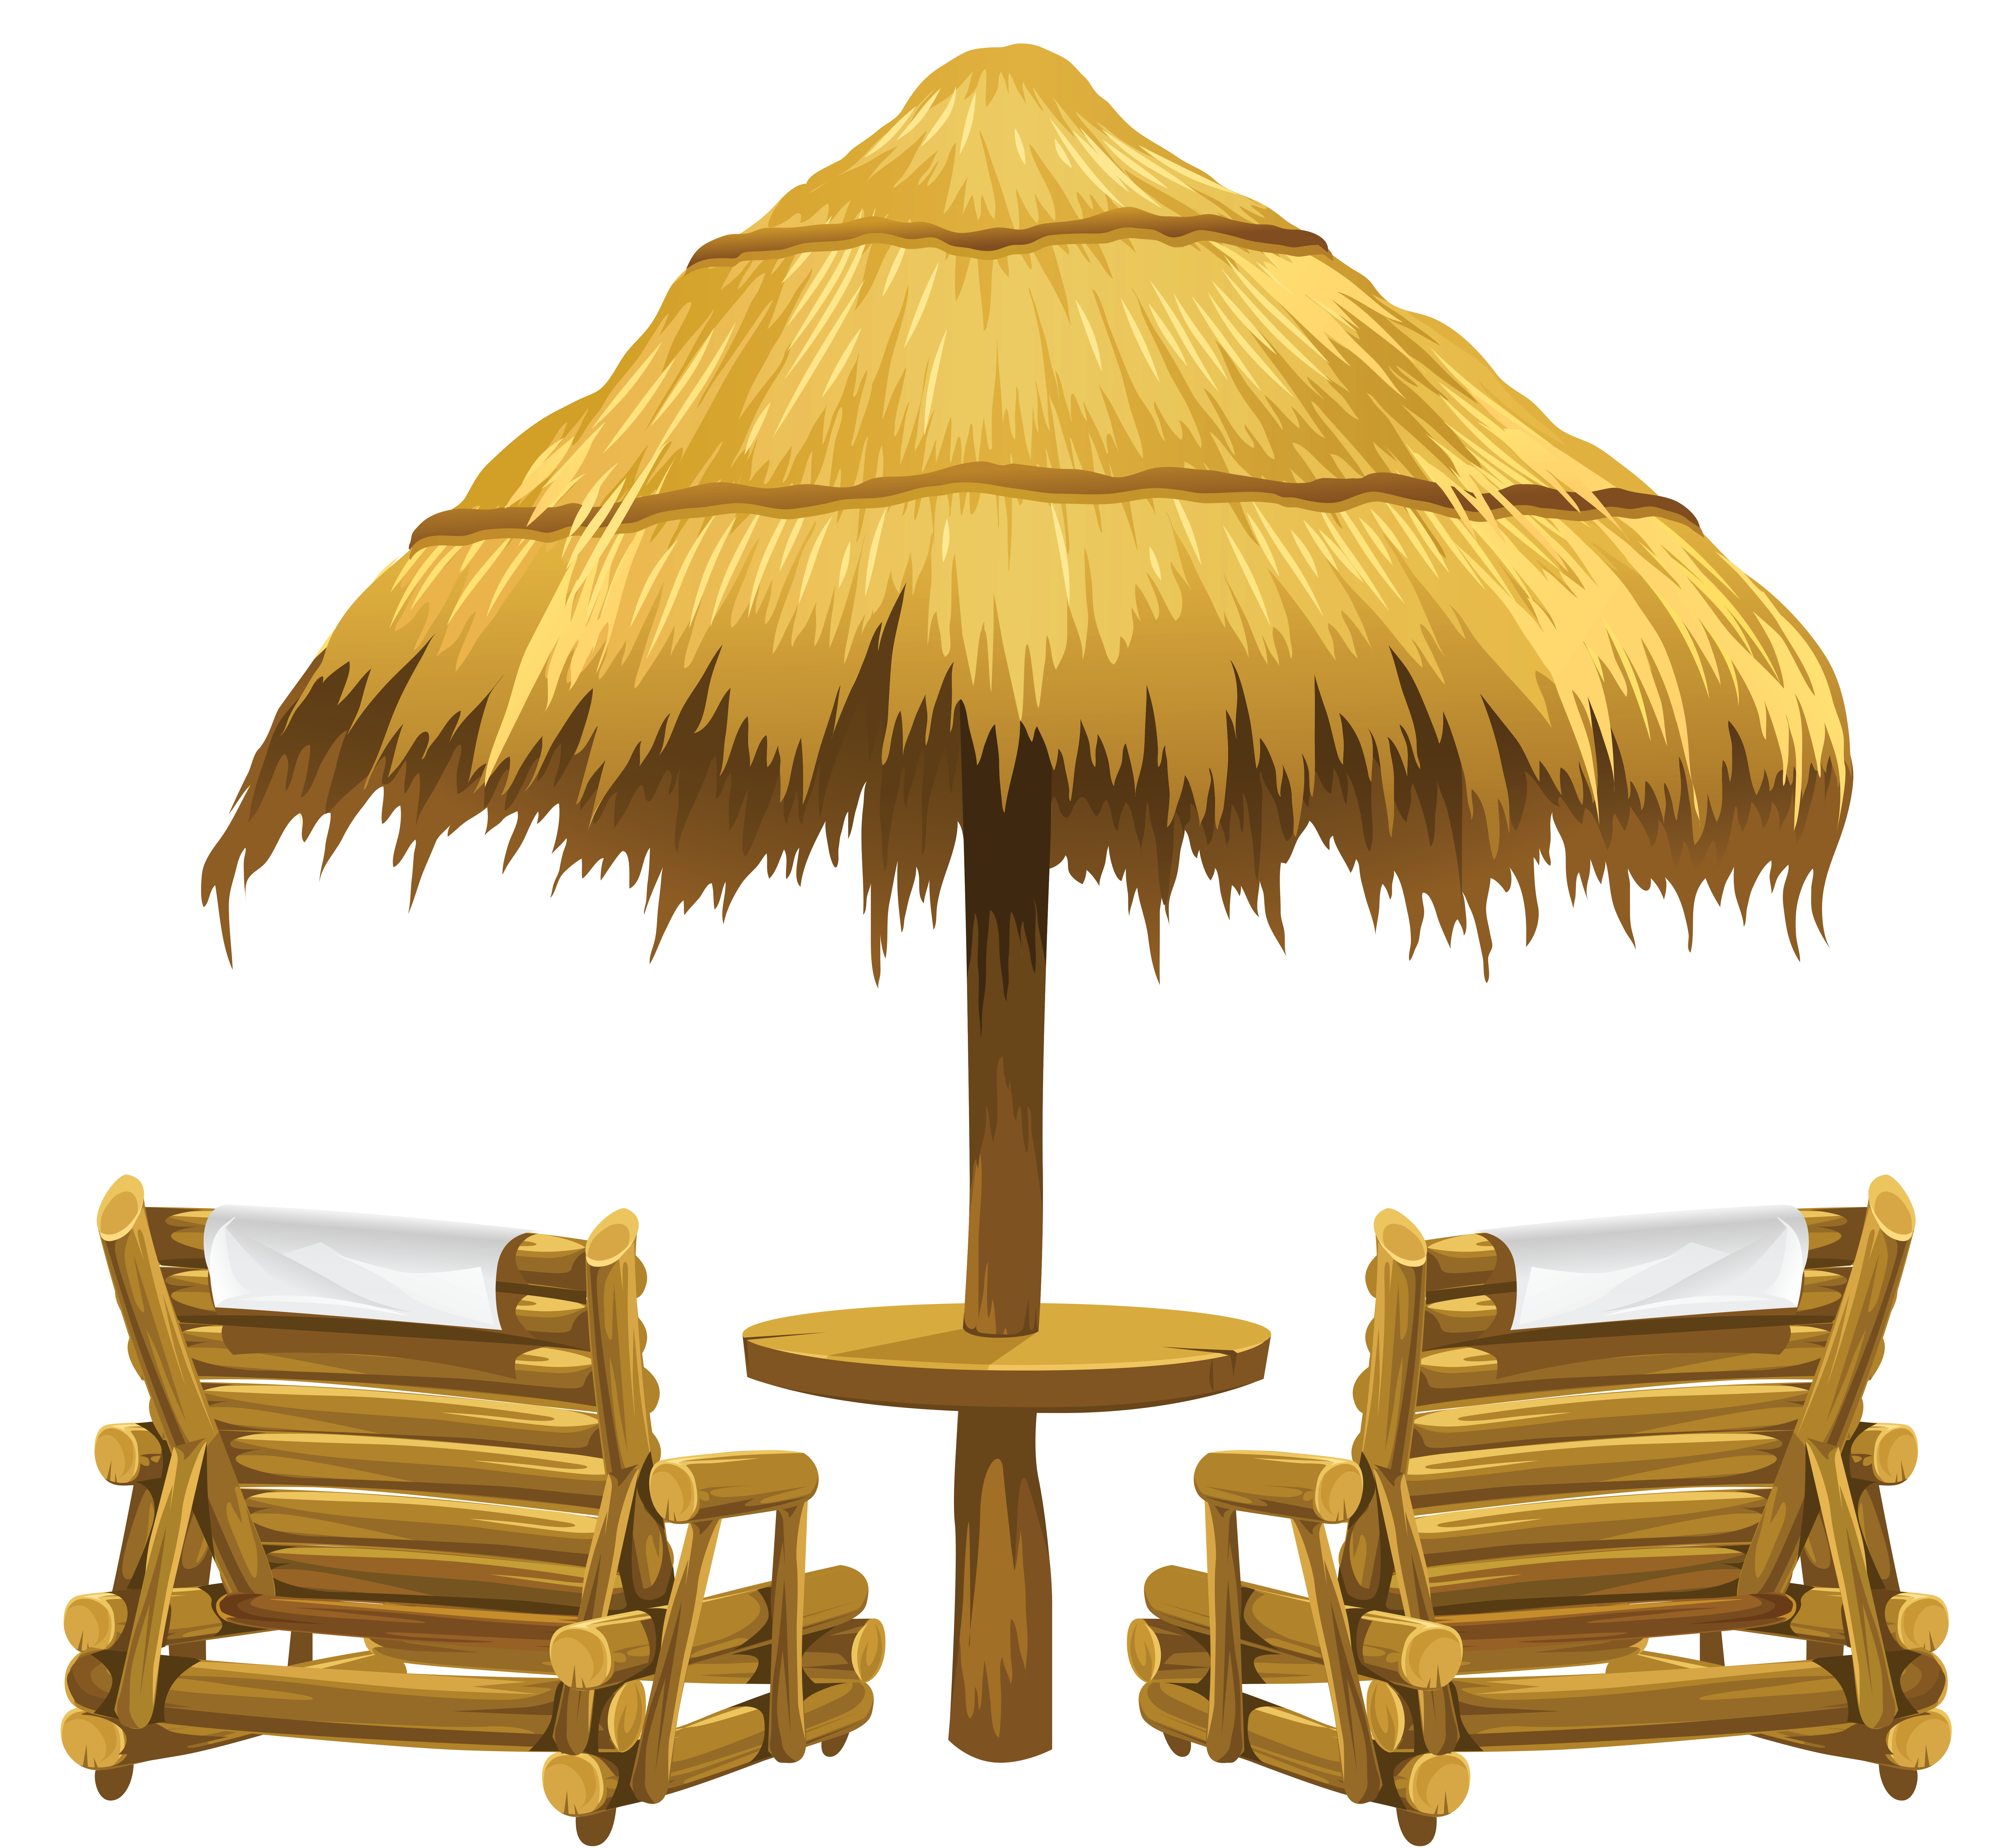 jpg black and white download Beach transparent aesthetic. Tiki umbrella and chairs